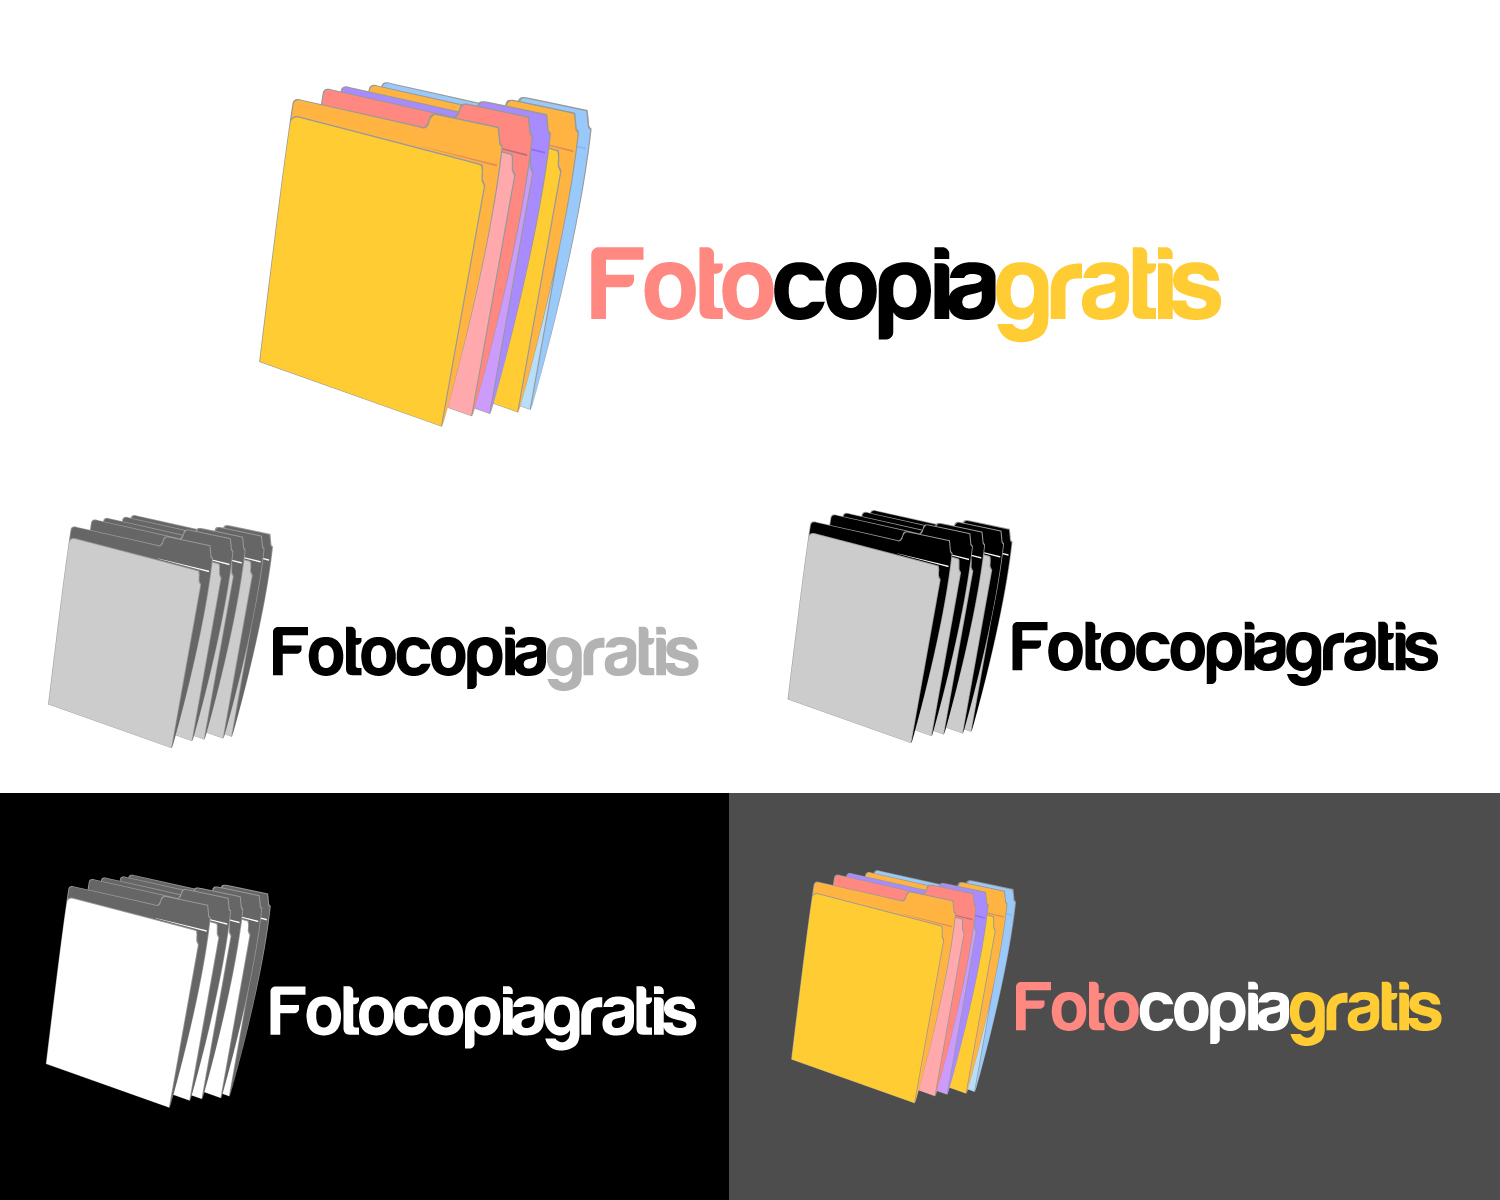 Logo Design by Jagdeep Singh - Entry No. 56 in the Logo Design Contest Inspiring Logo Design for Fotocopiagratis.